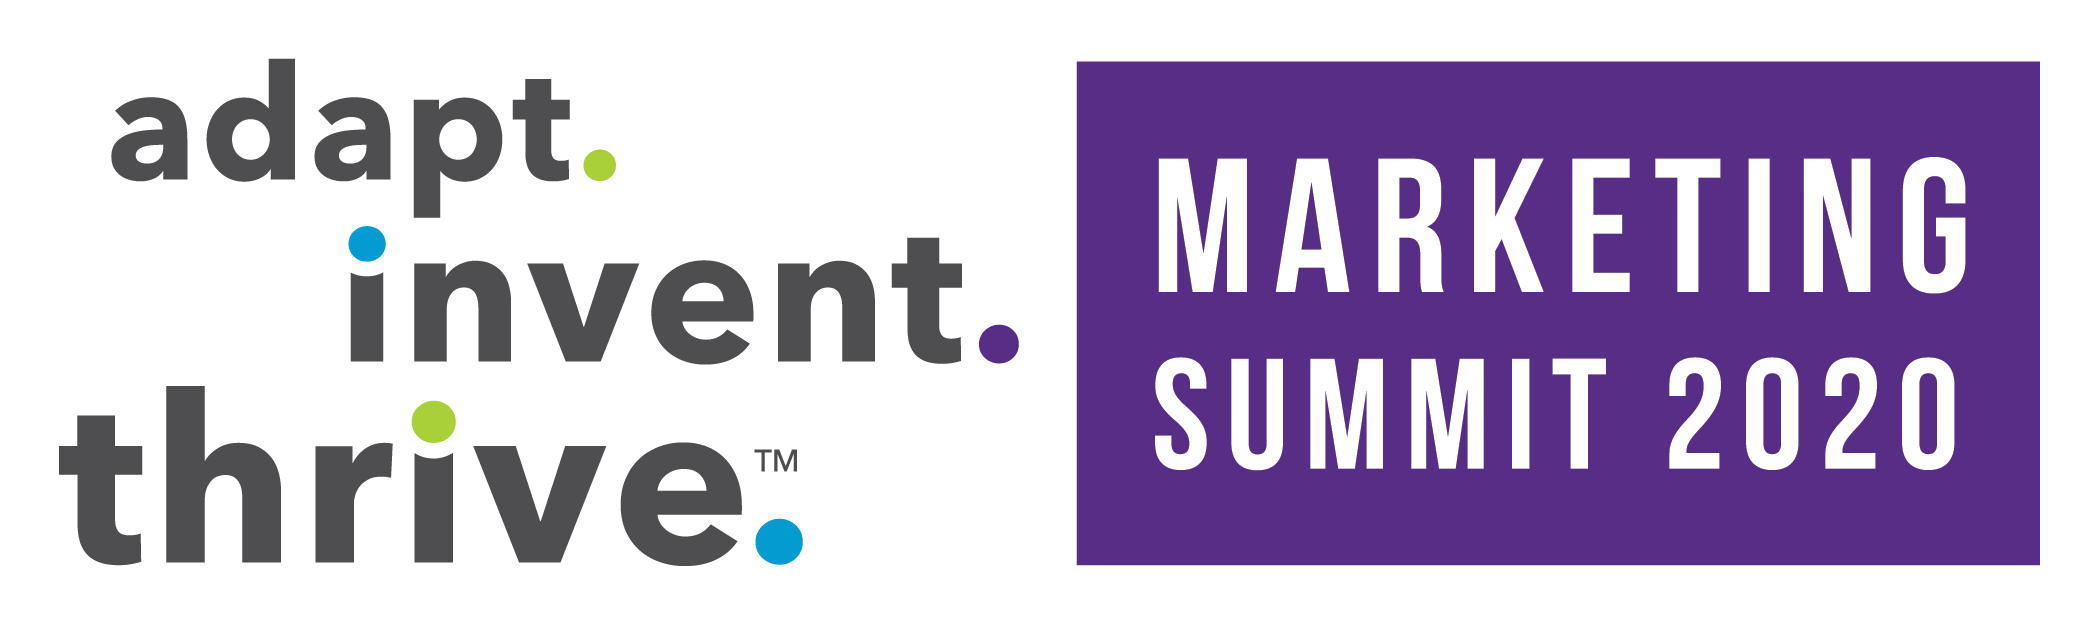 adapt invent thrive marketing summit  2020